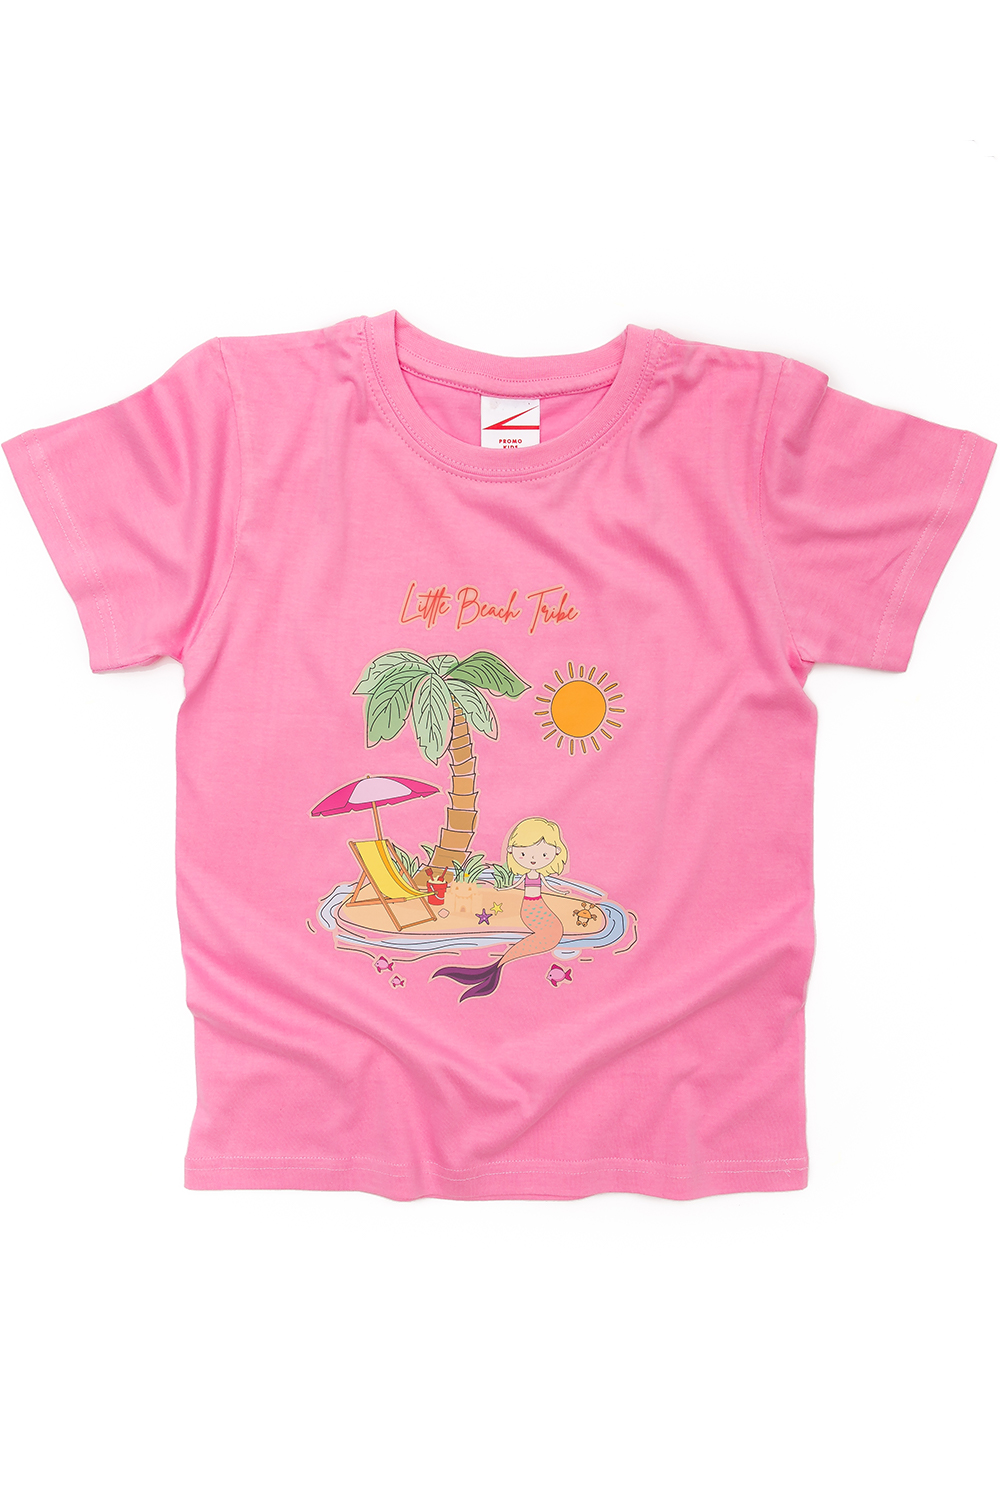 Pink T-shirt mermaid